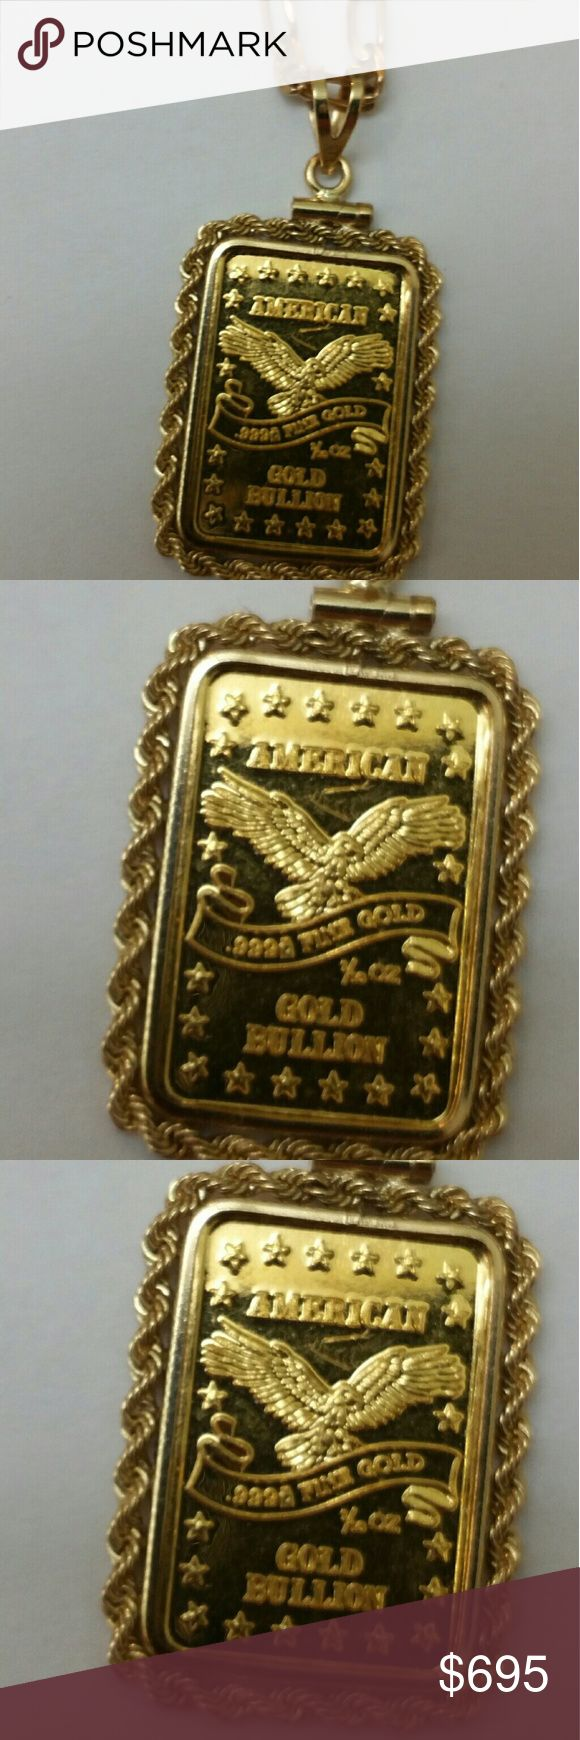 American 1/10oz .999 pure gold bullion pendant 24k  .999 pure gold American bullion plus 14k yellow gold marked 14k frame. Weight 5.08gr. Necklace not included. Jewelry Necklaces